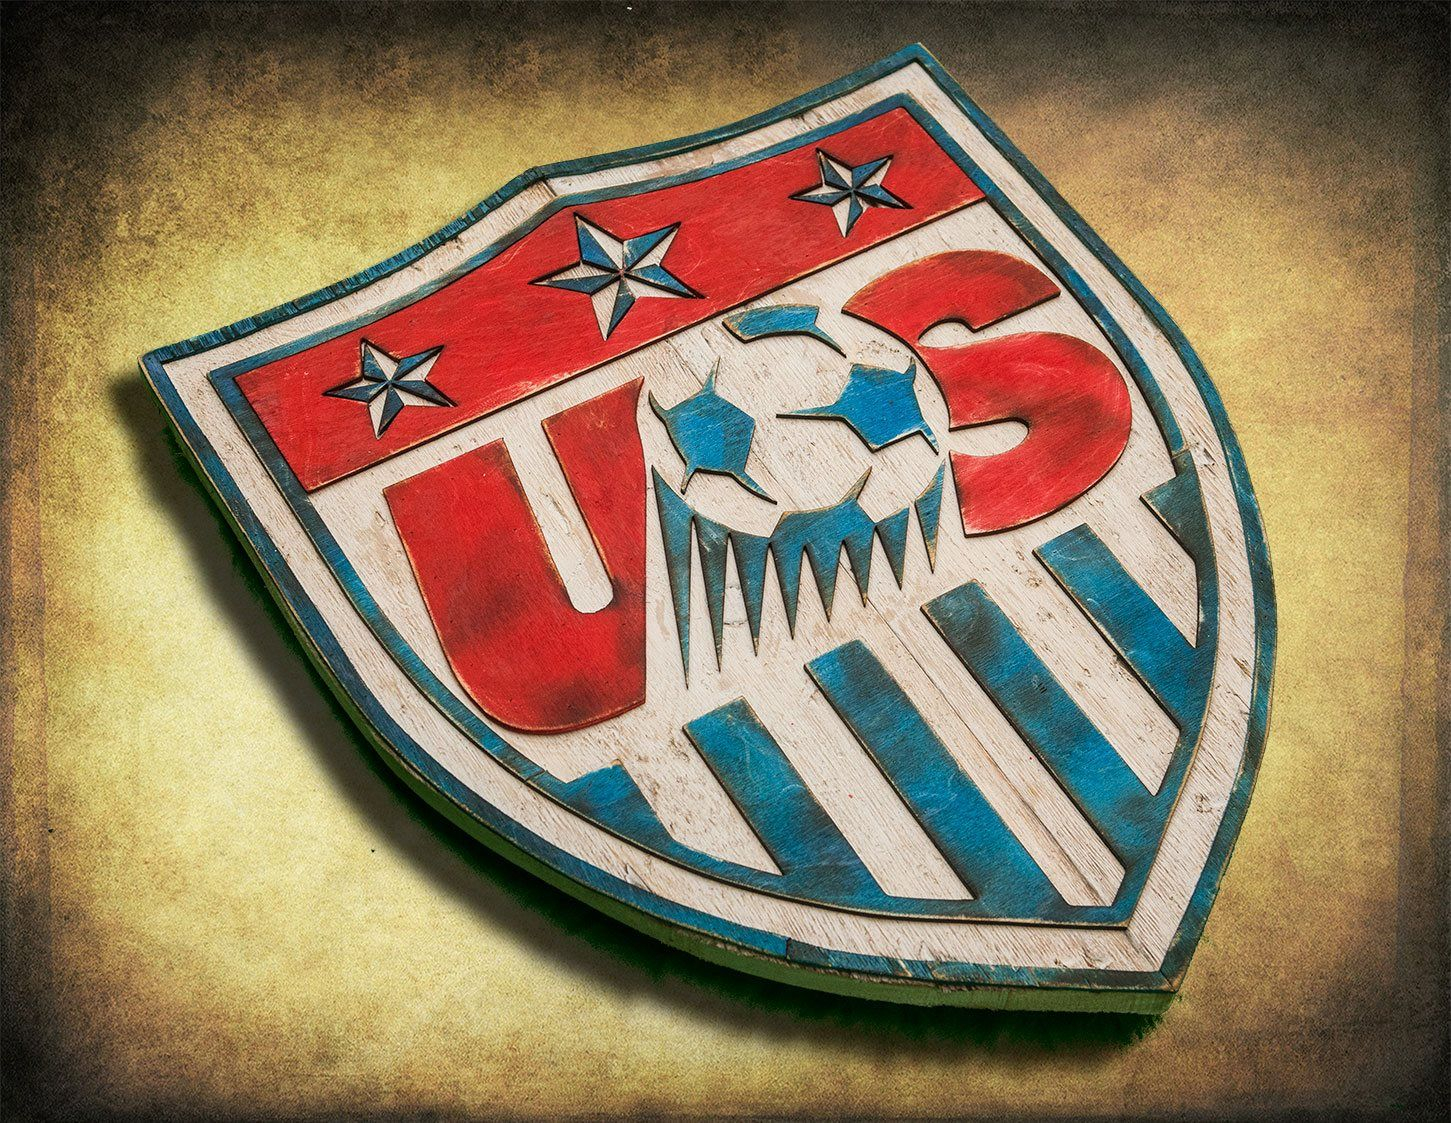 Us Soccer Team Wooden Handmade 3-D Wall Art Show Your Sports regarding American Pride 3D Wall Decor (Image 28 of 30)